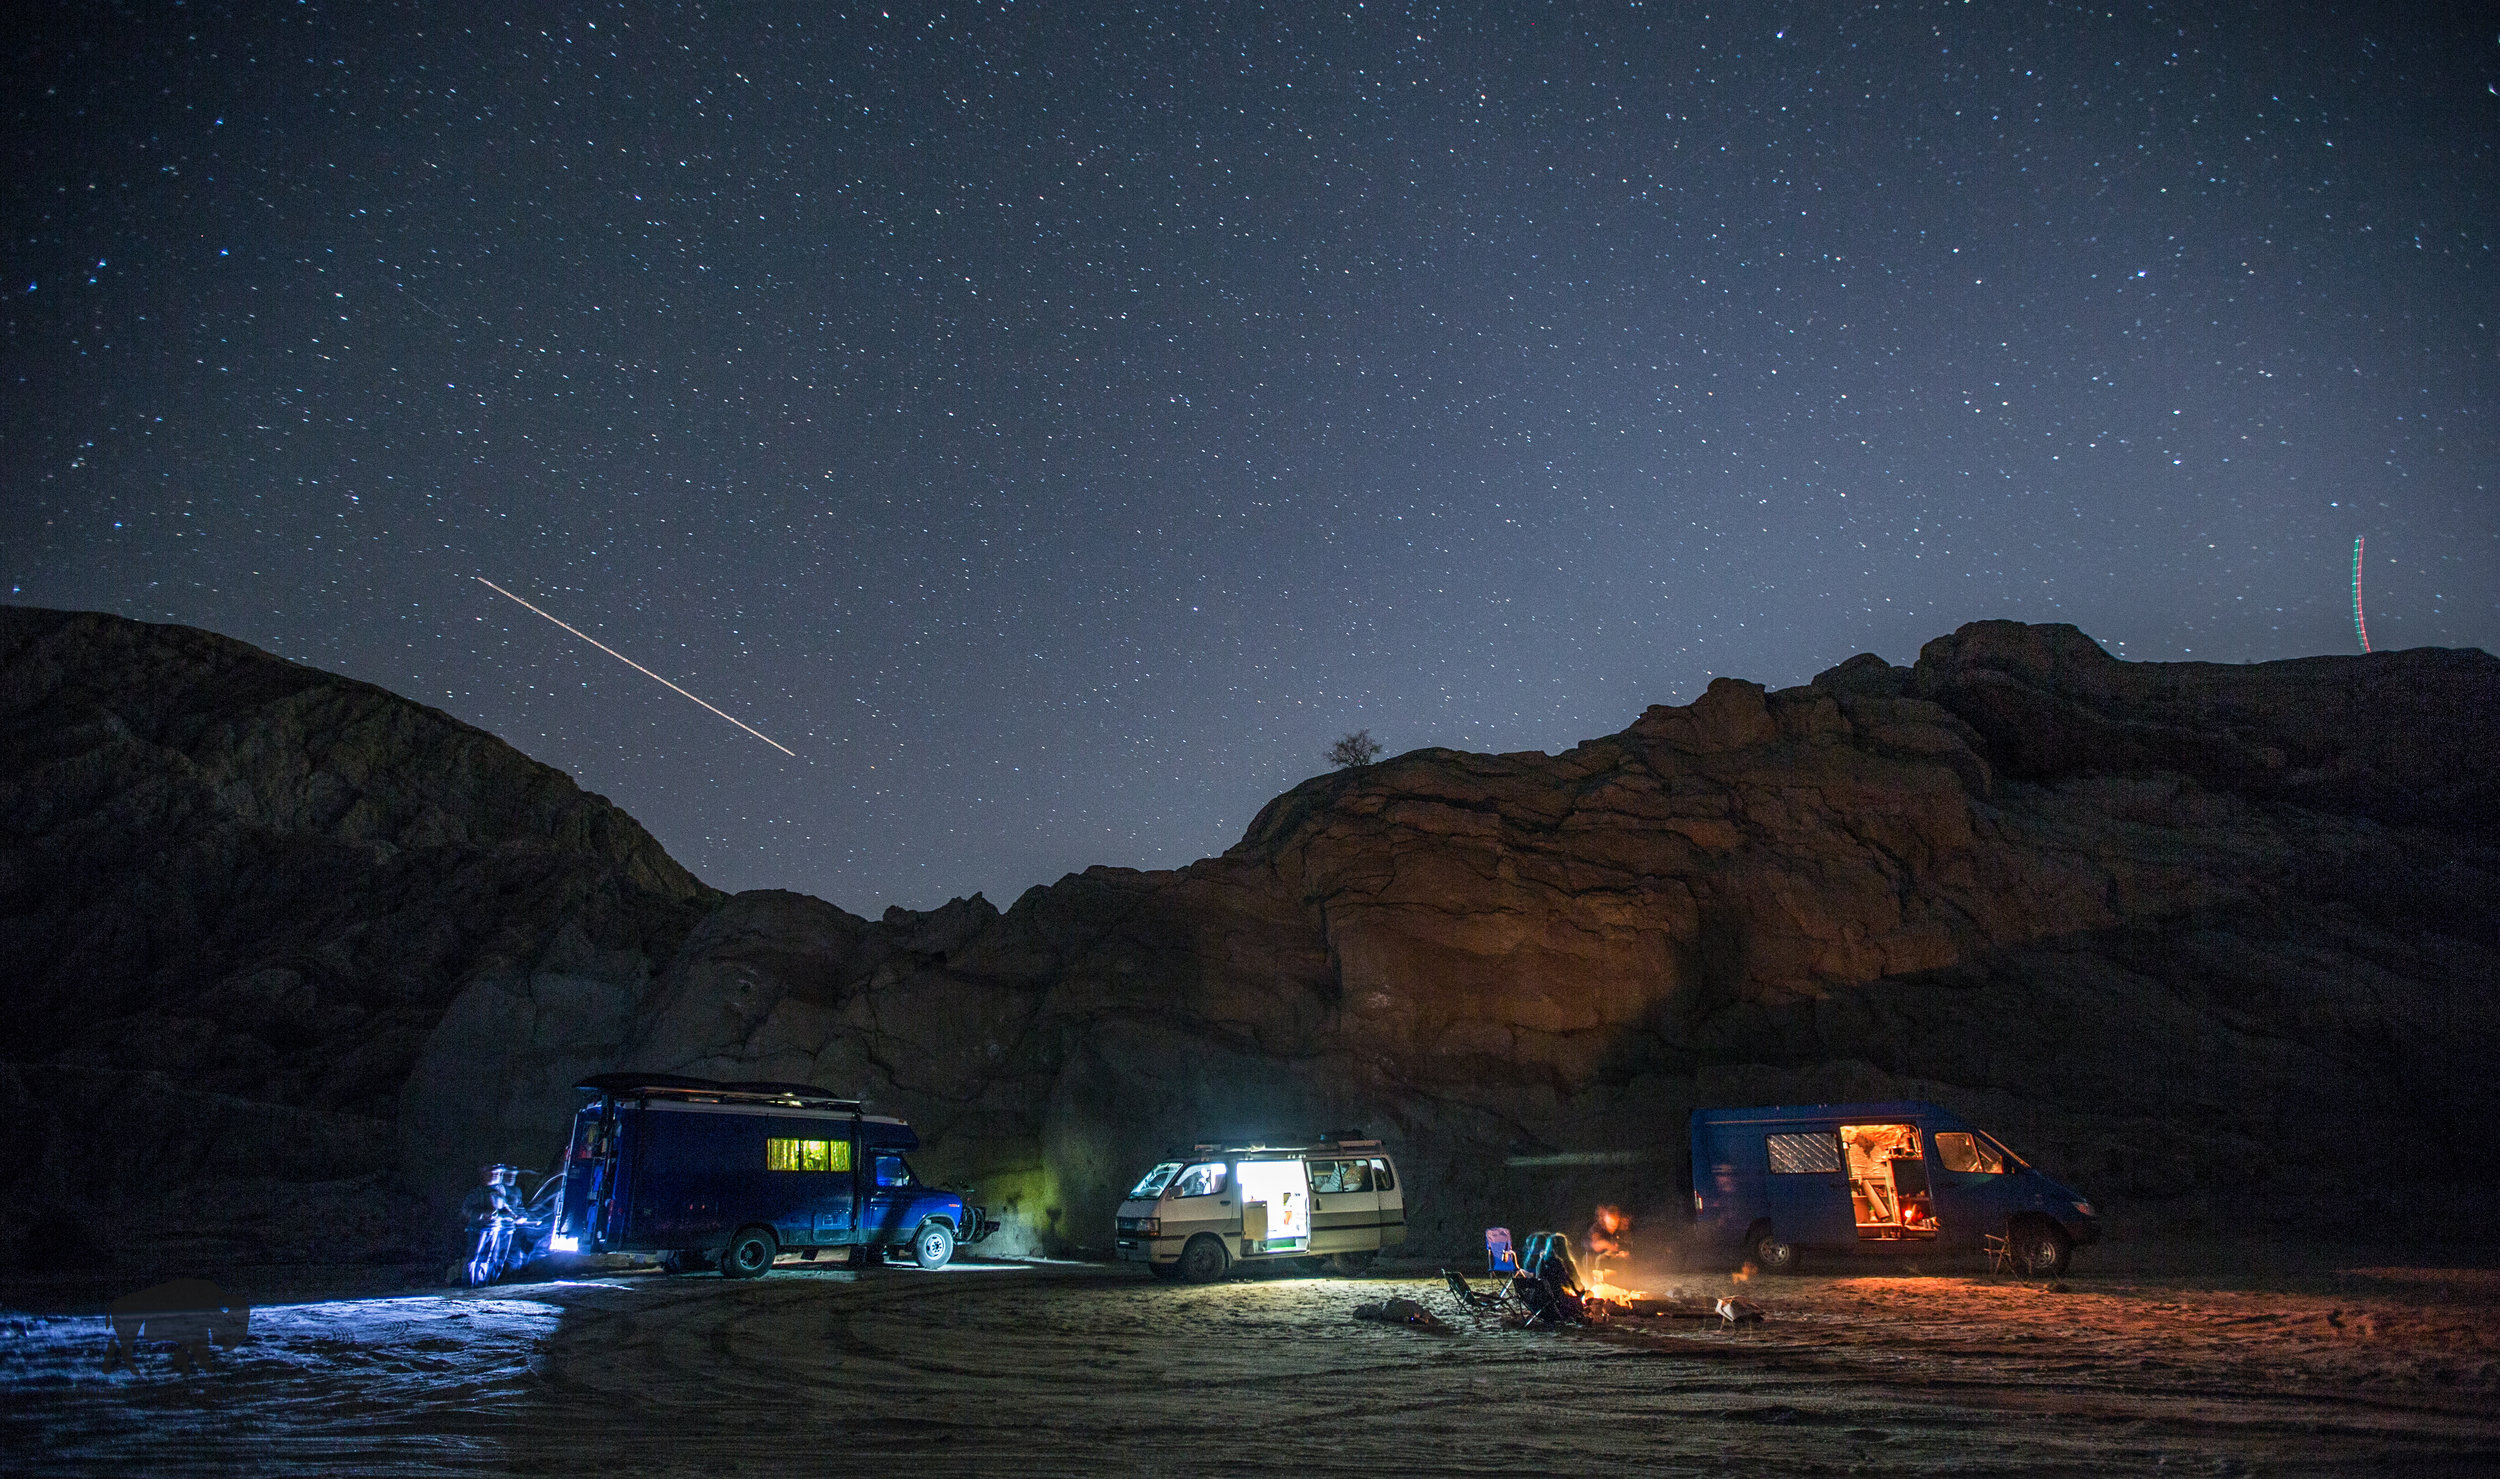 We all spent the night together in Painted Canyon and enjoyed many beers, conversation and shared stories.